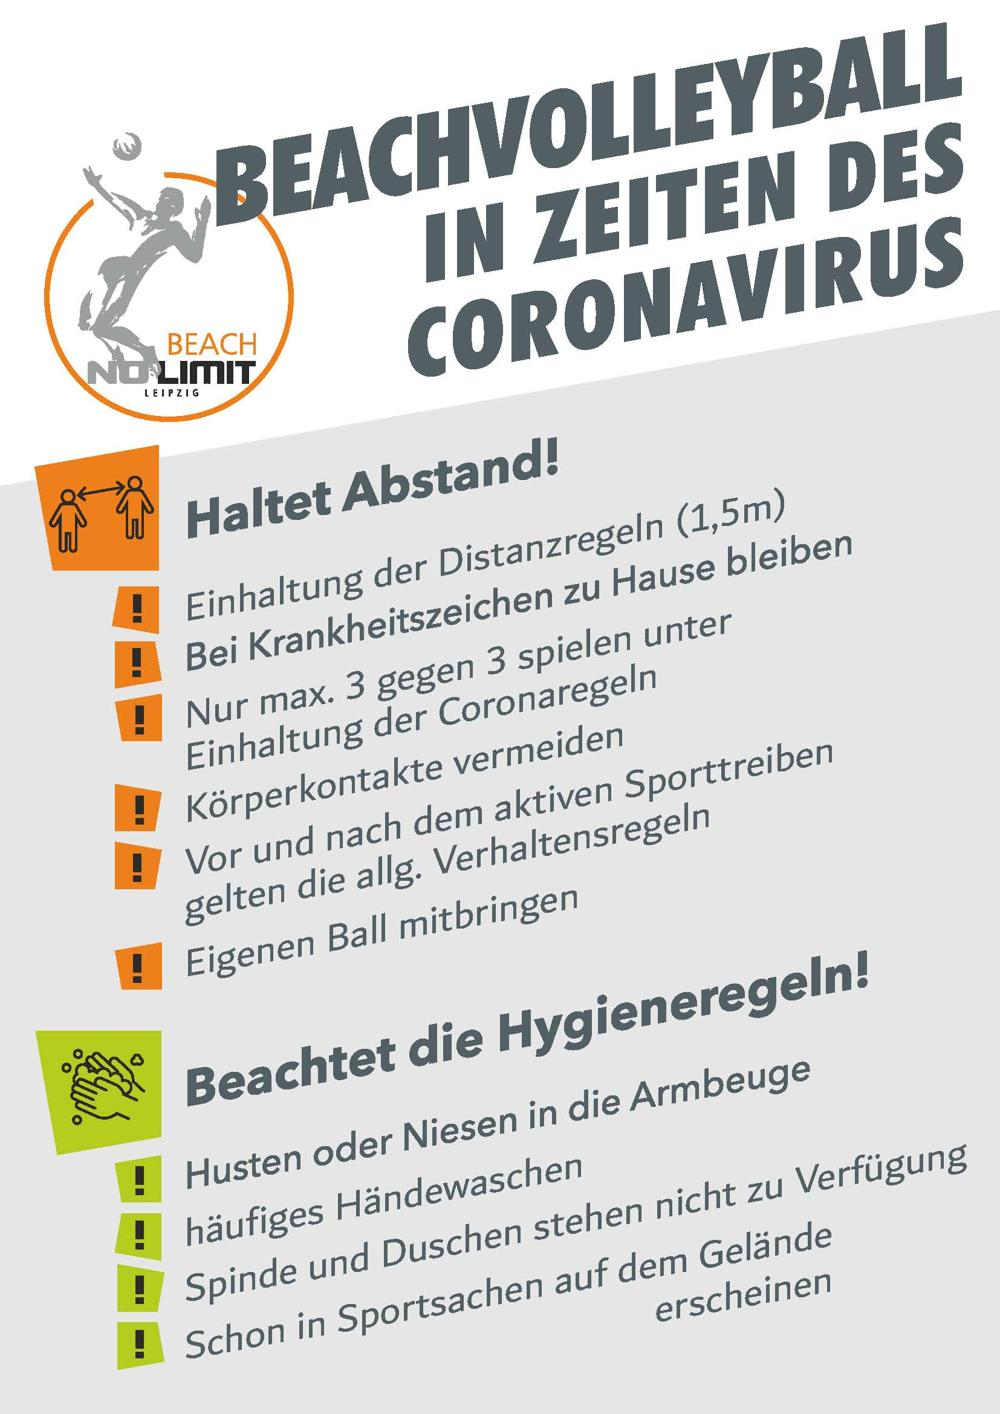 Beachvolleyball Coronavirus